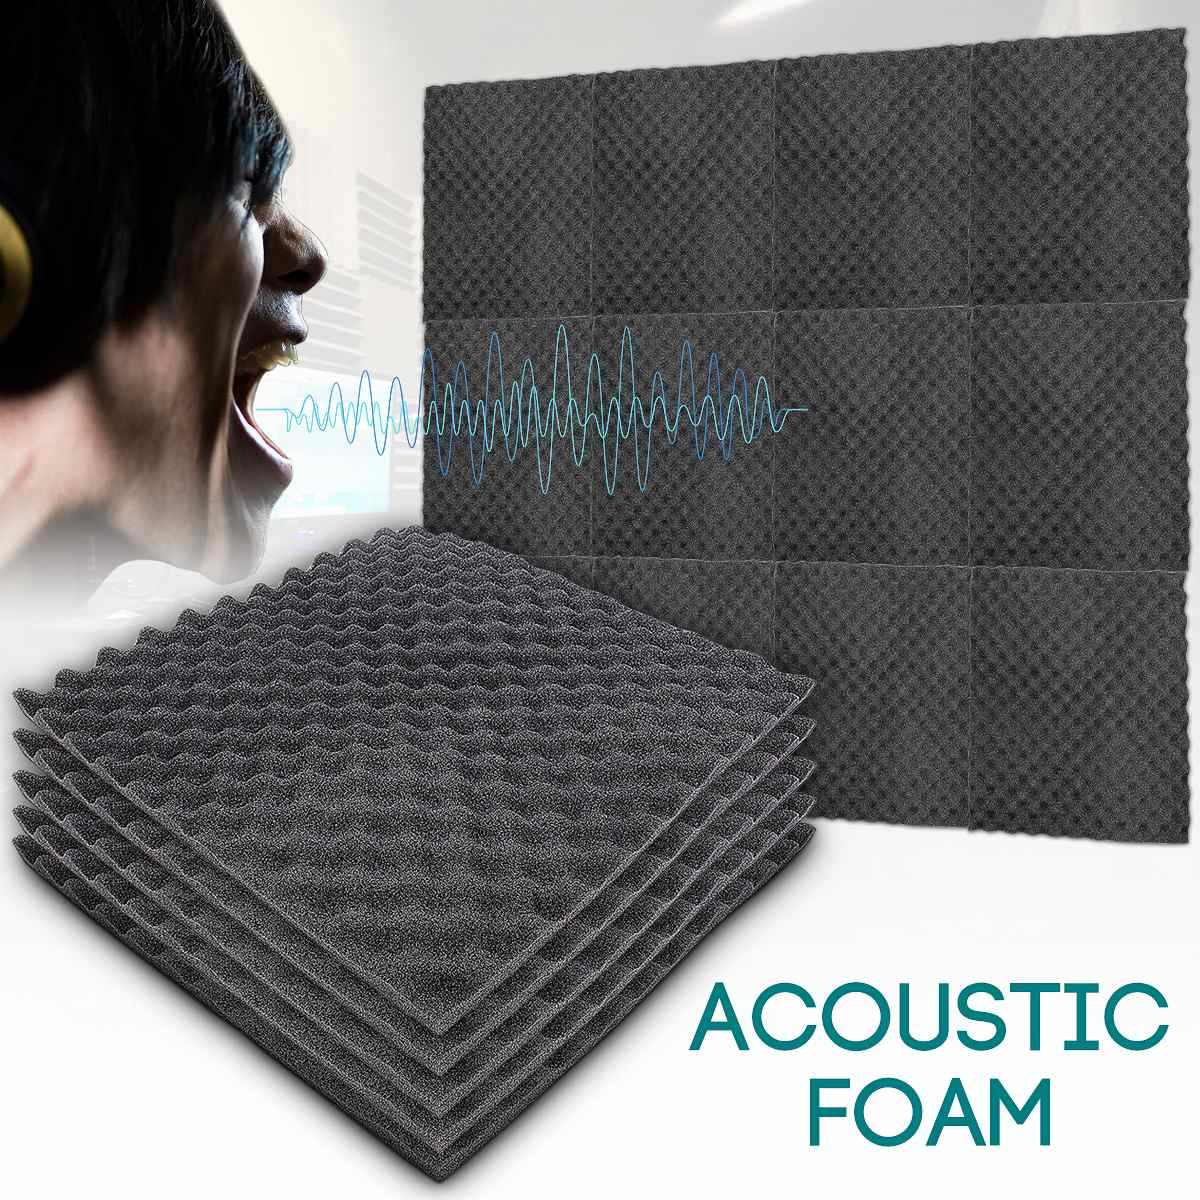 1PCS 50x50cm Sound Absorbing Soundproofing Foam Home Studio Acoustic Sound Treatment Absorption Wedge Tile Polyurethane Foam